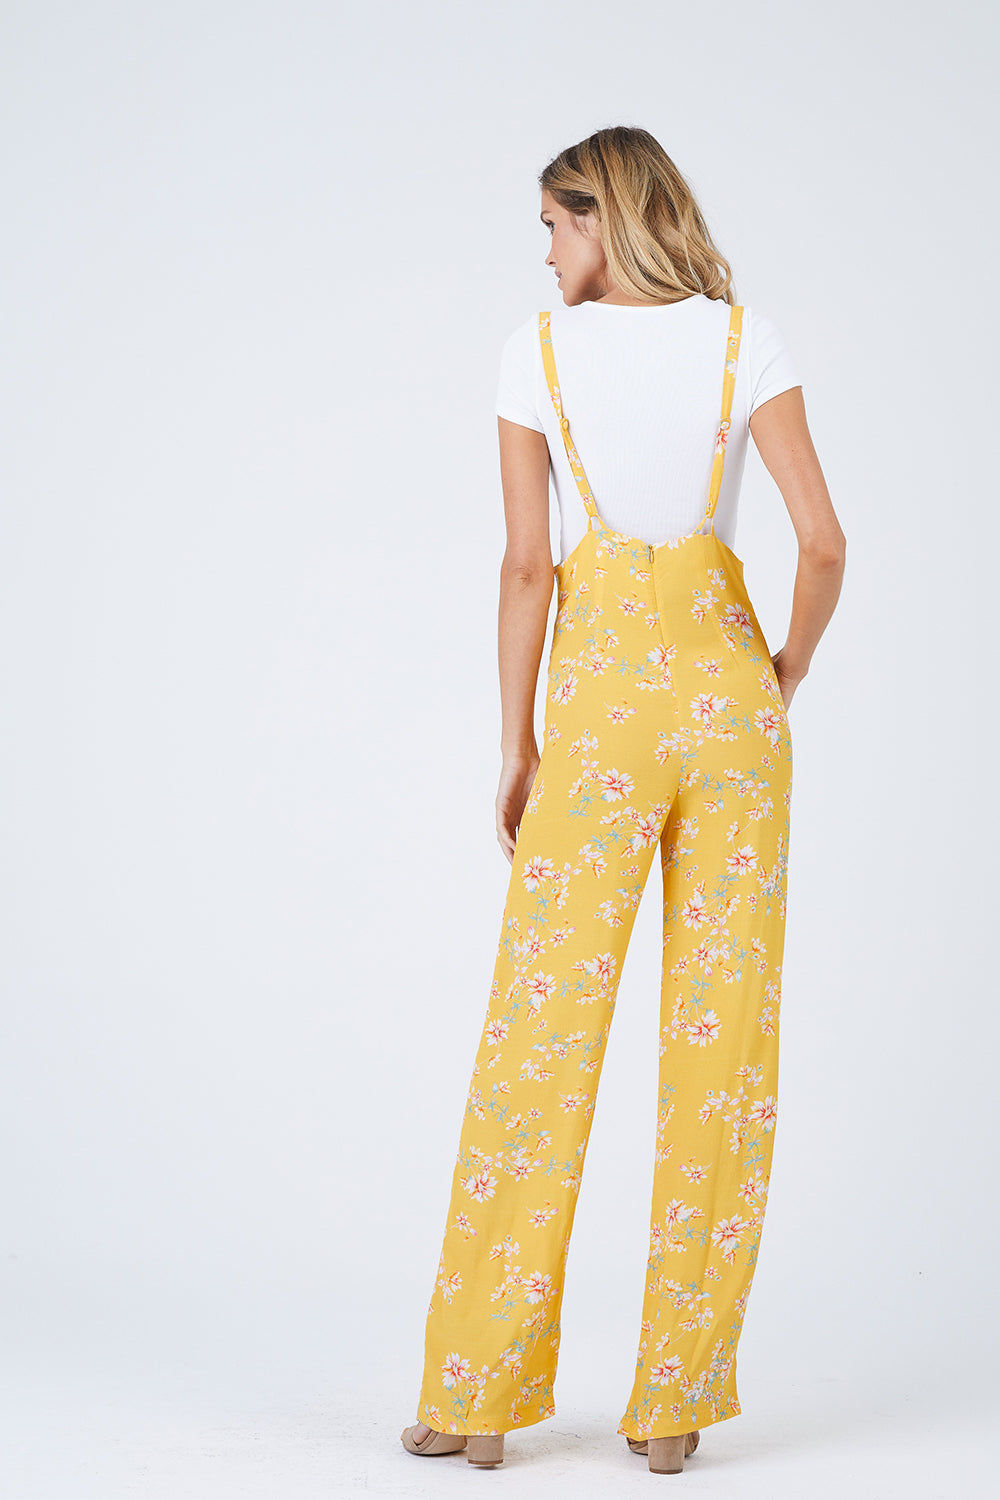 FLYNN SKYE Easy Rider Jumper - Touch Of Honey Jumpsuit | Touch Of Honey| Flynn Skye Easy Rider Jumper - Touch Of Honey Overall jumper Wide leg Thin straps at hight of waist Dry clean Made in Los Angeles Back View